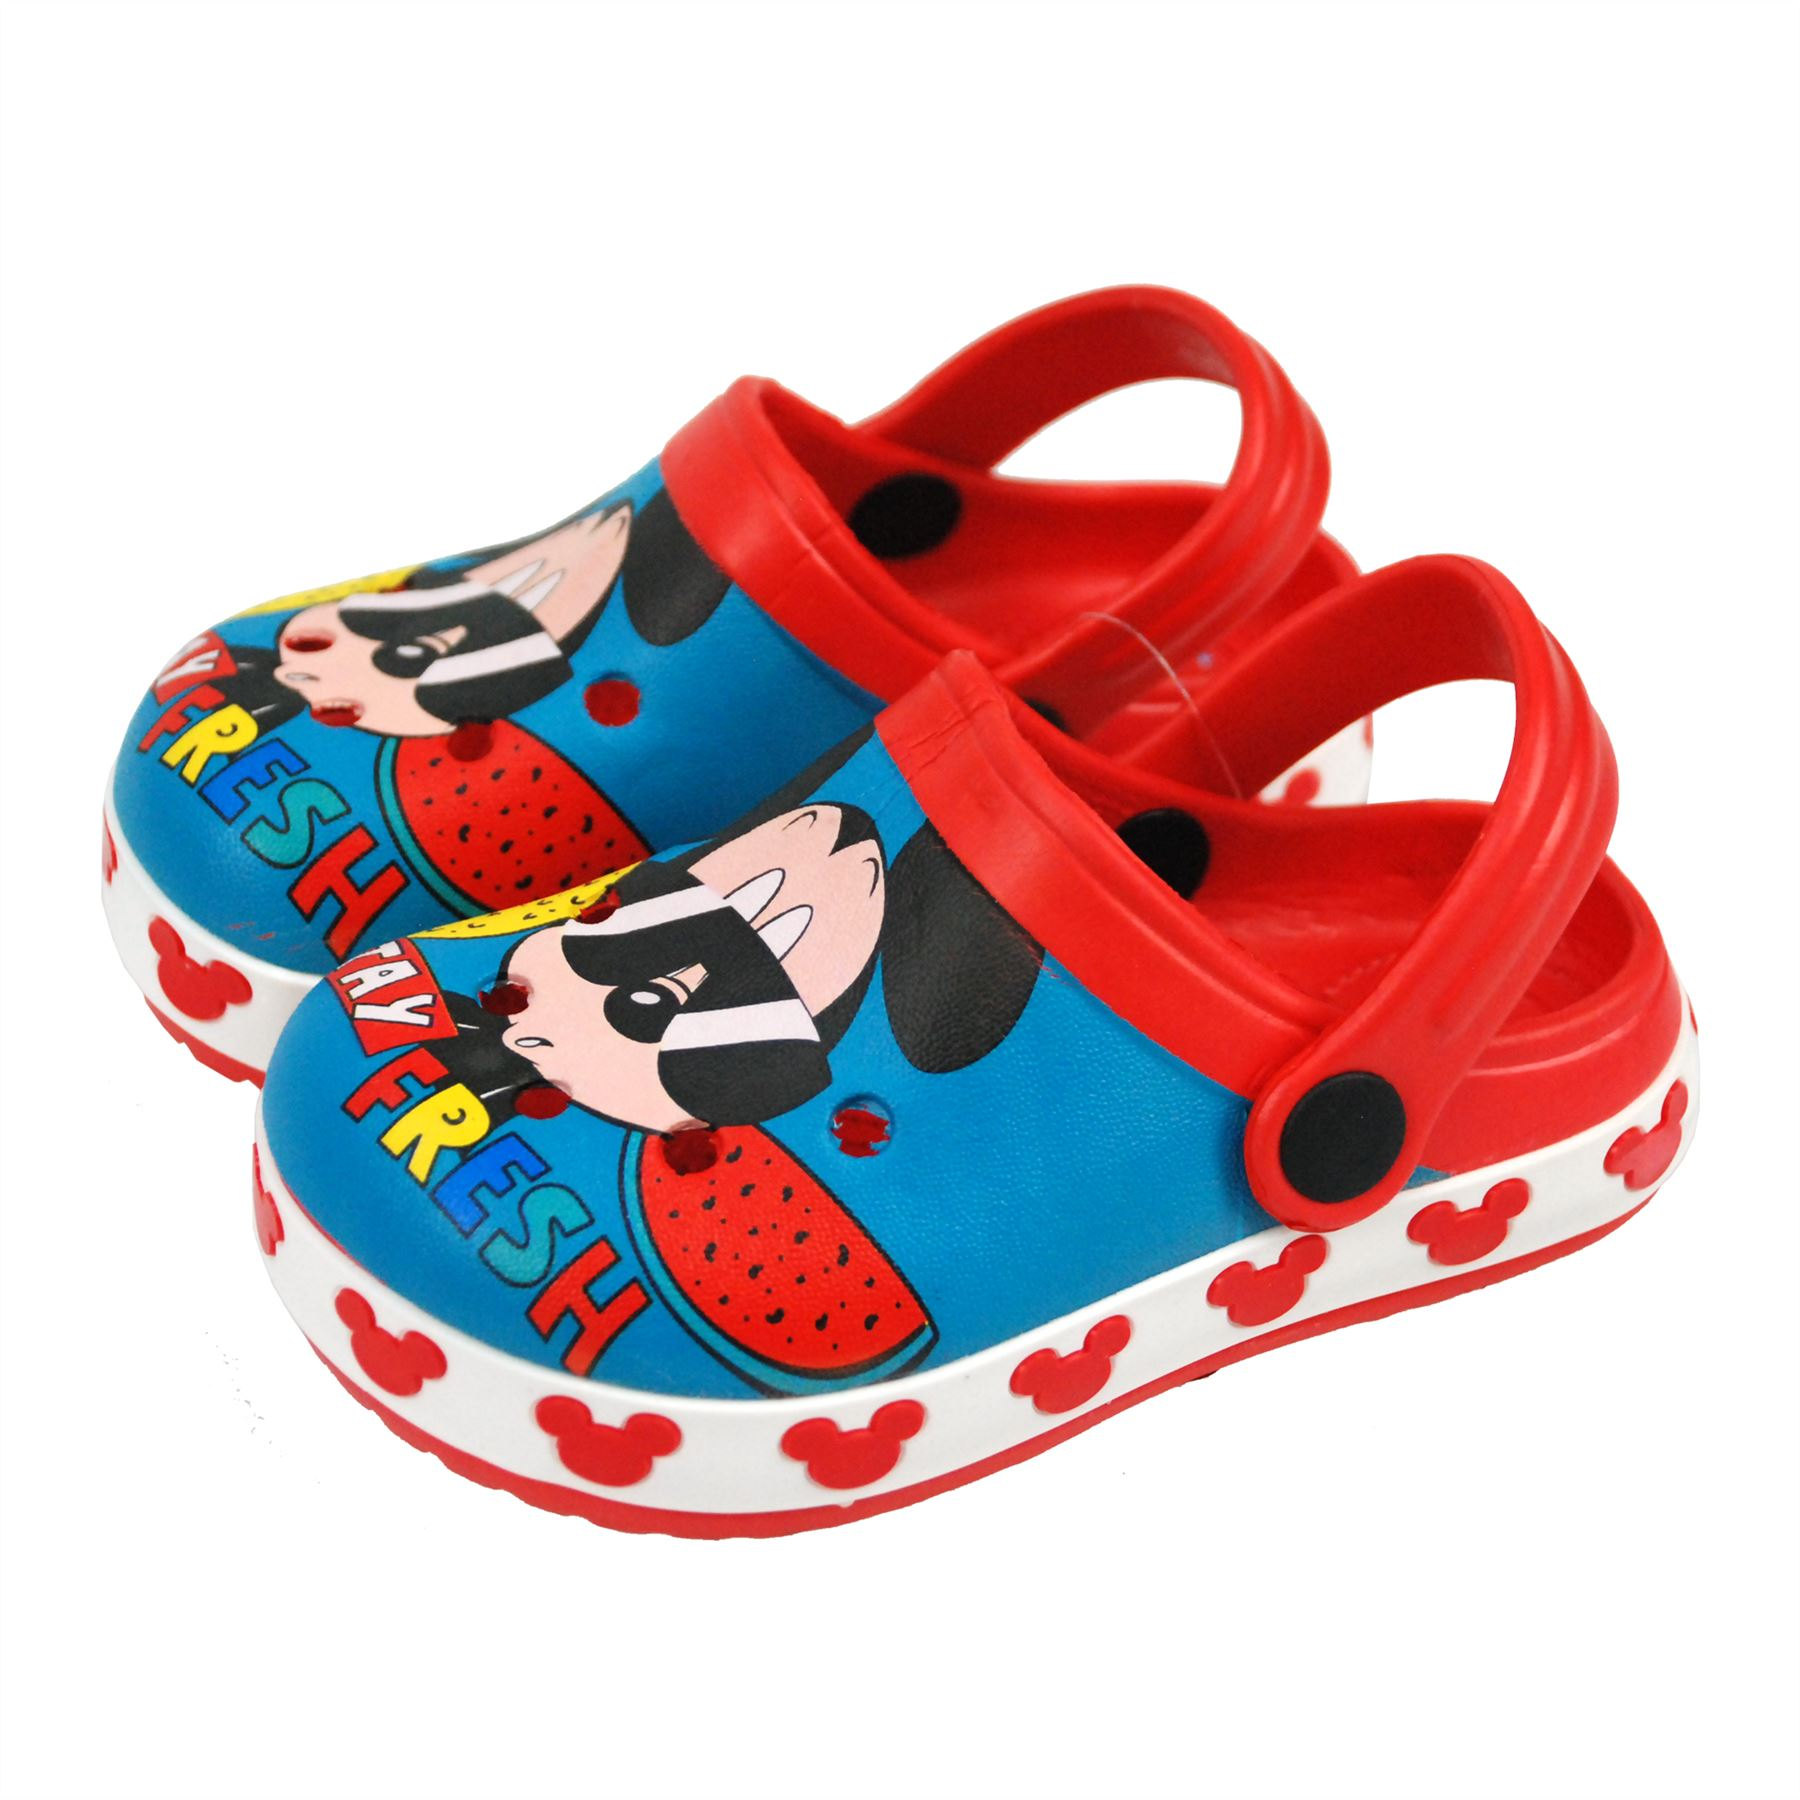 Disney® Mickey Mouse Kids Boys Sandals Beach Slippers Shoes UK Sizes 5 to 1